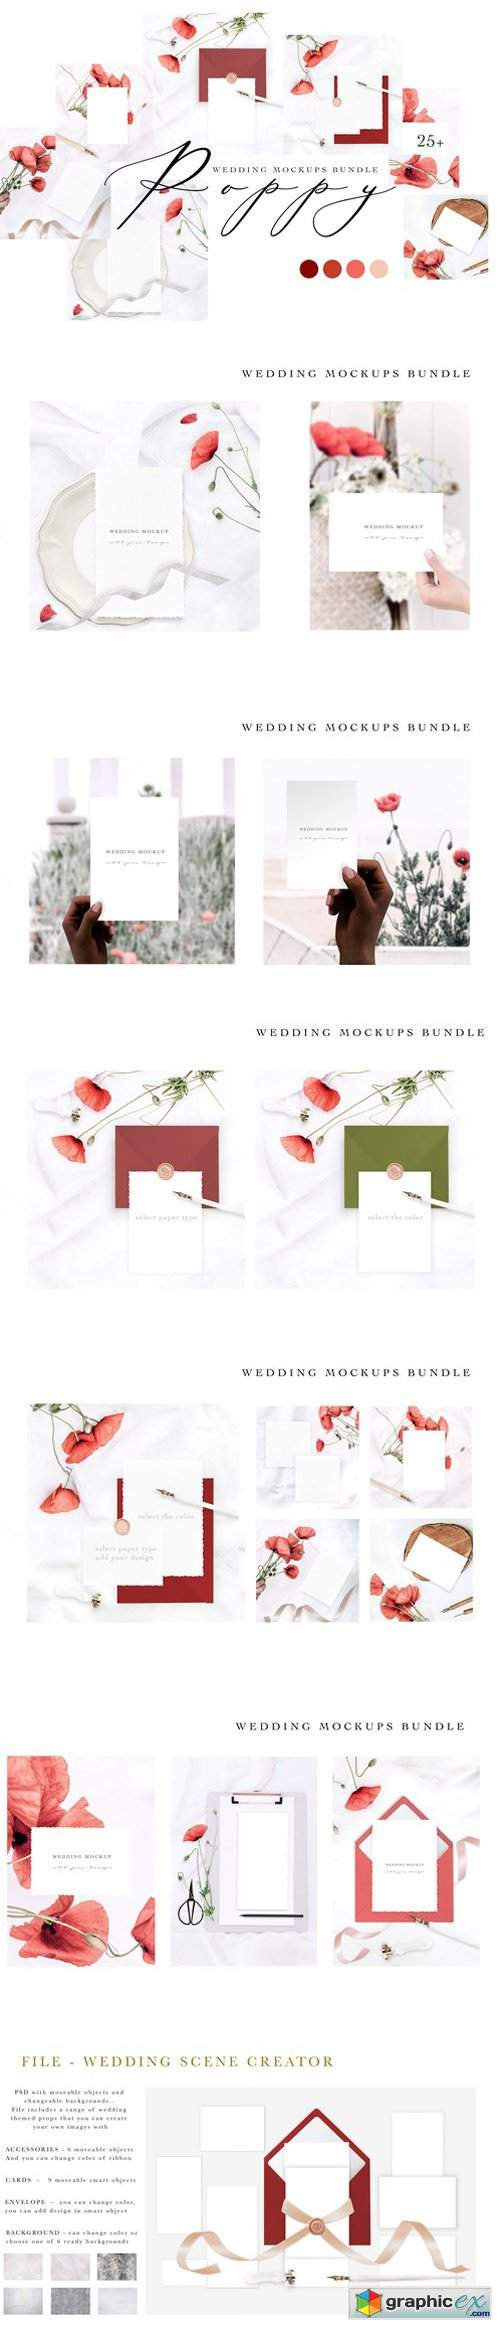 POPPY. WEDDING MOCKUPS BUNDLE